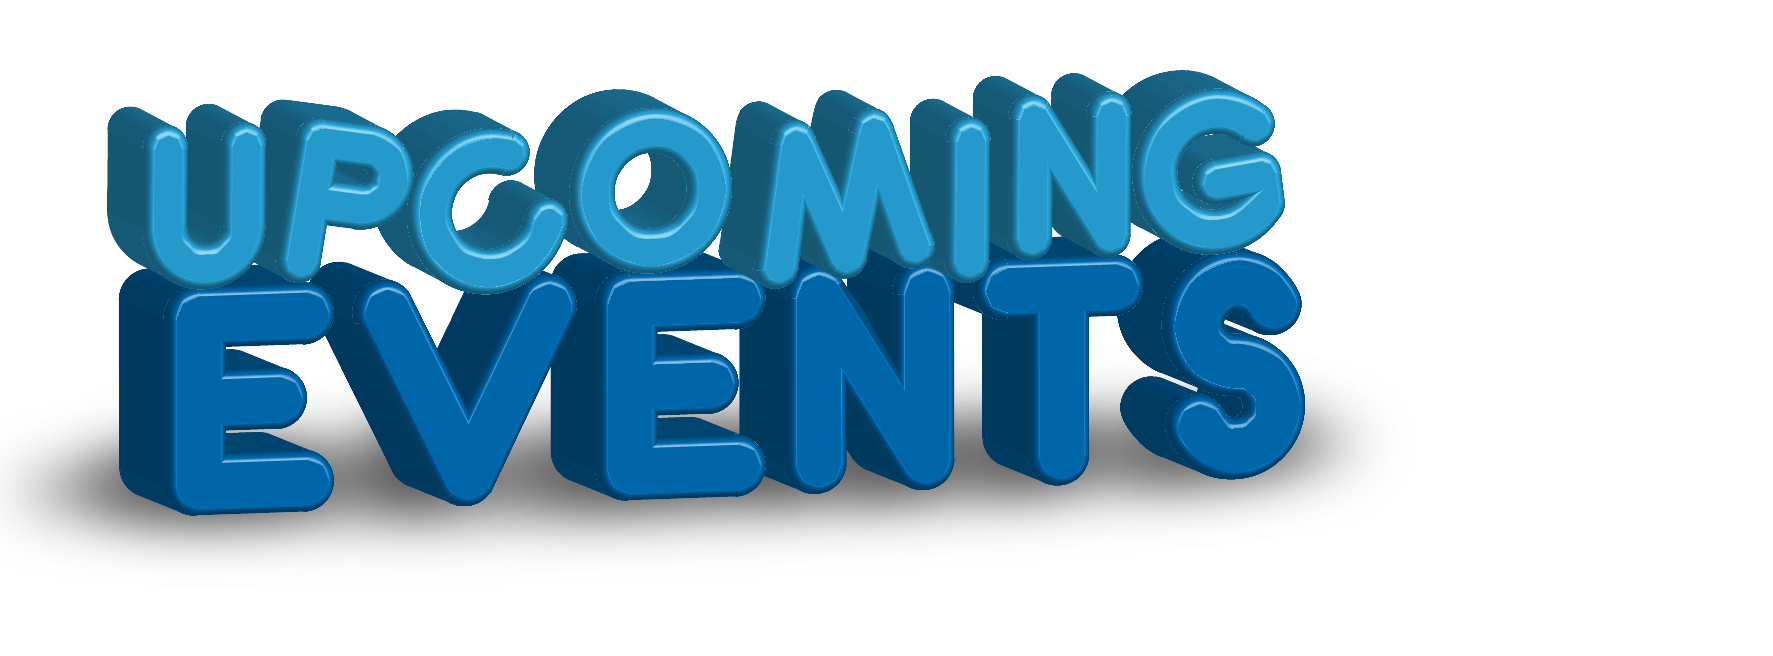 3D Upcoming Events Clipart - Upcoming Events Clipart